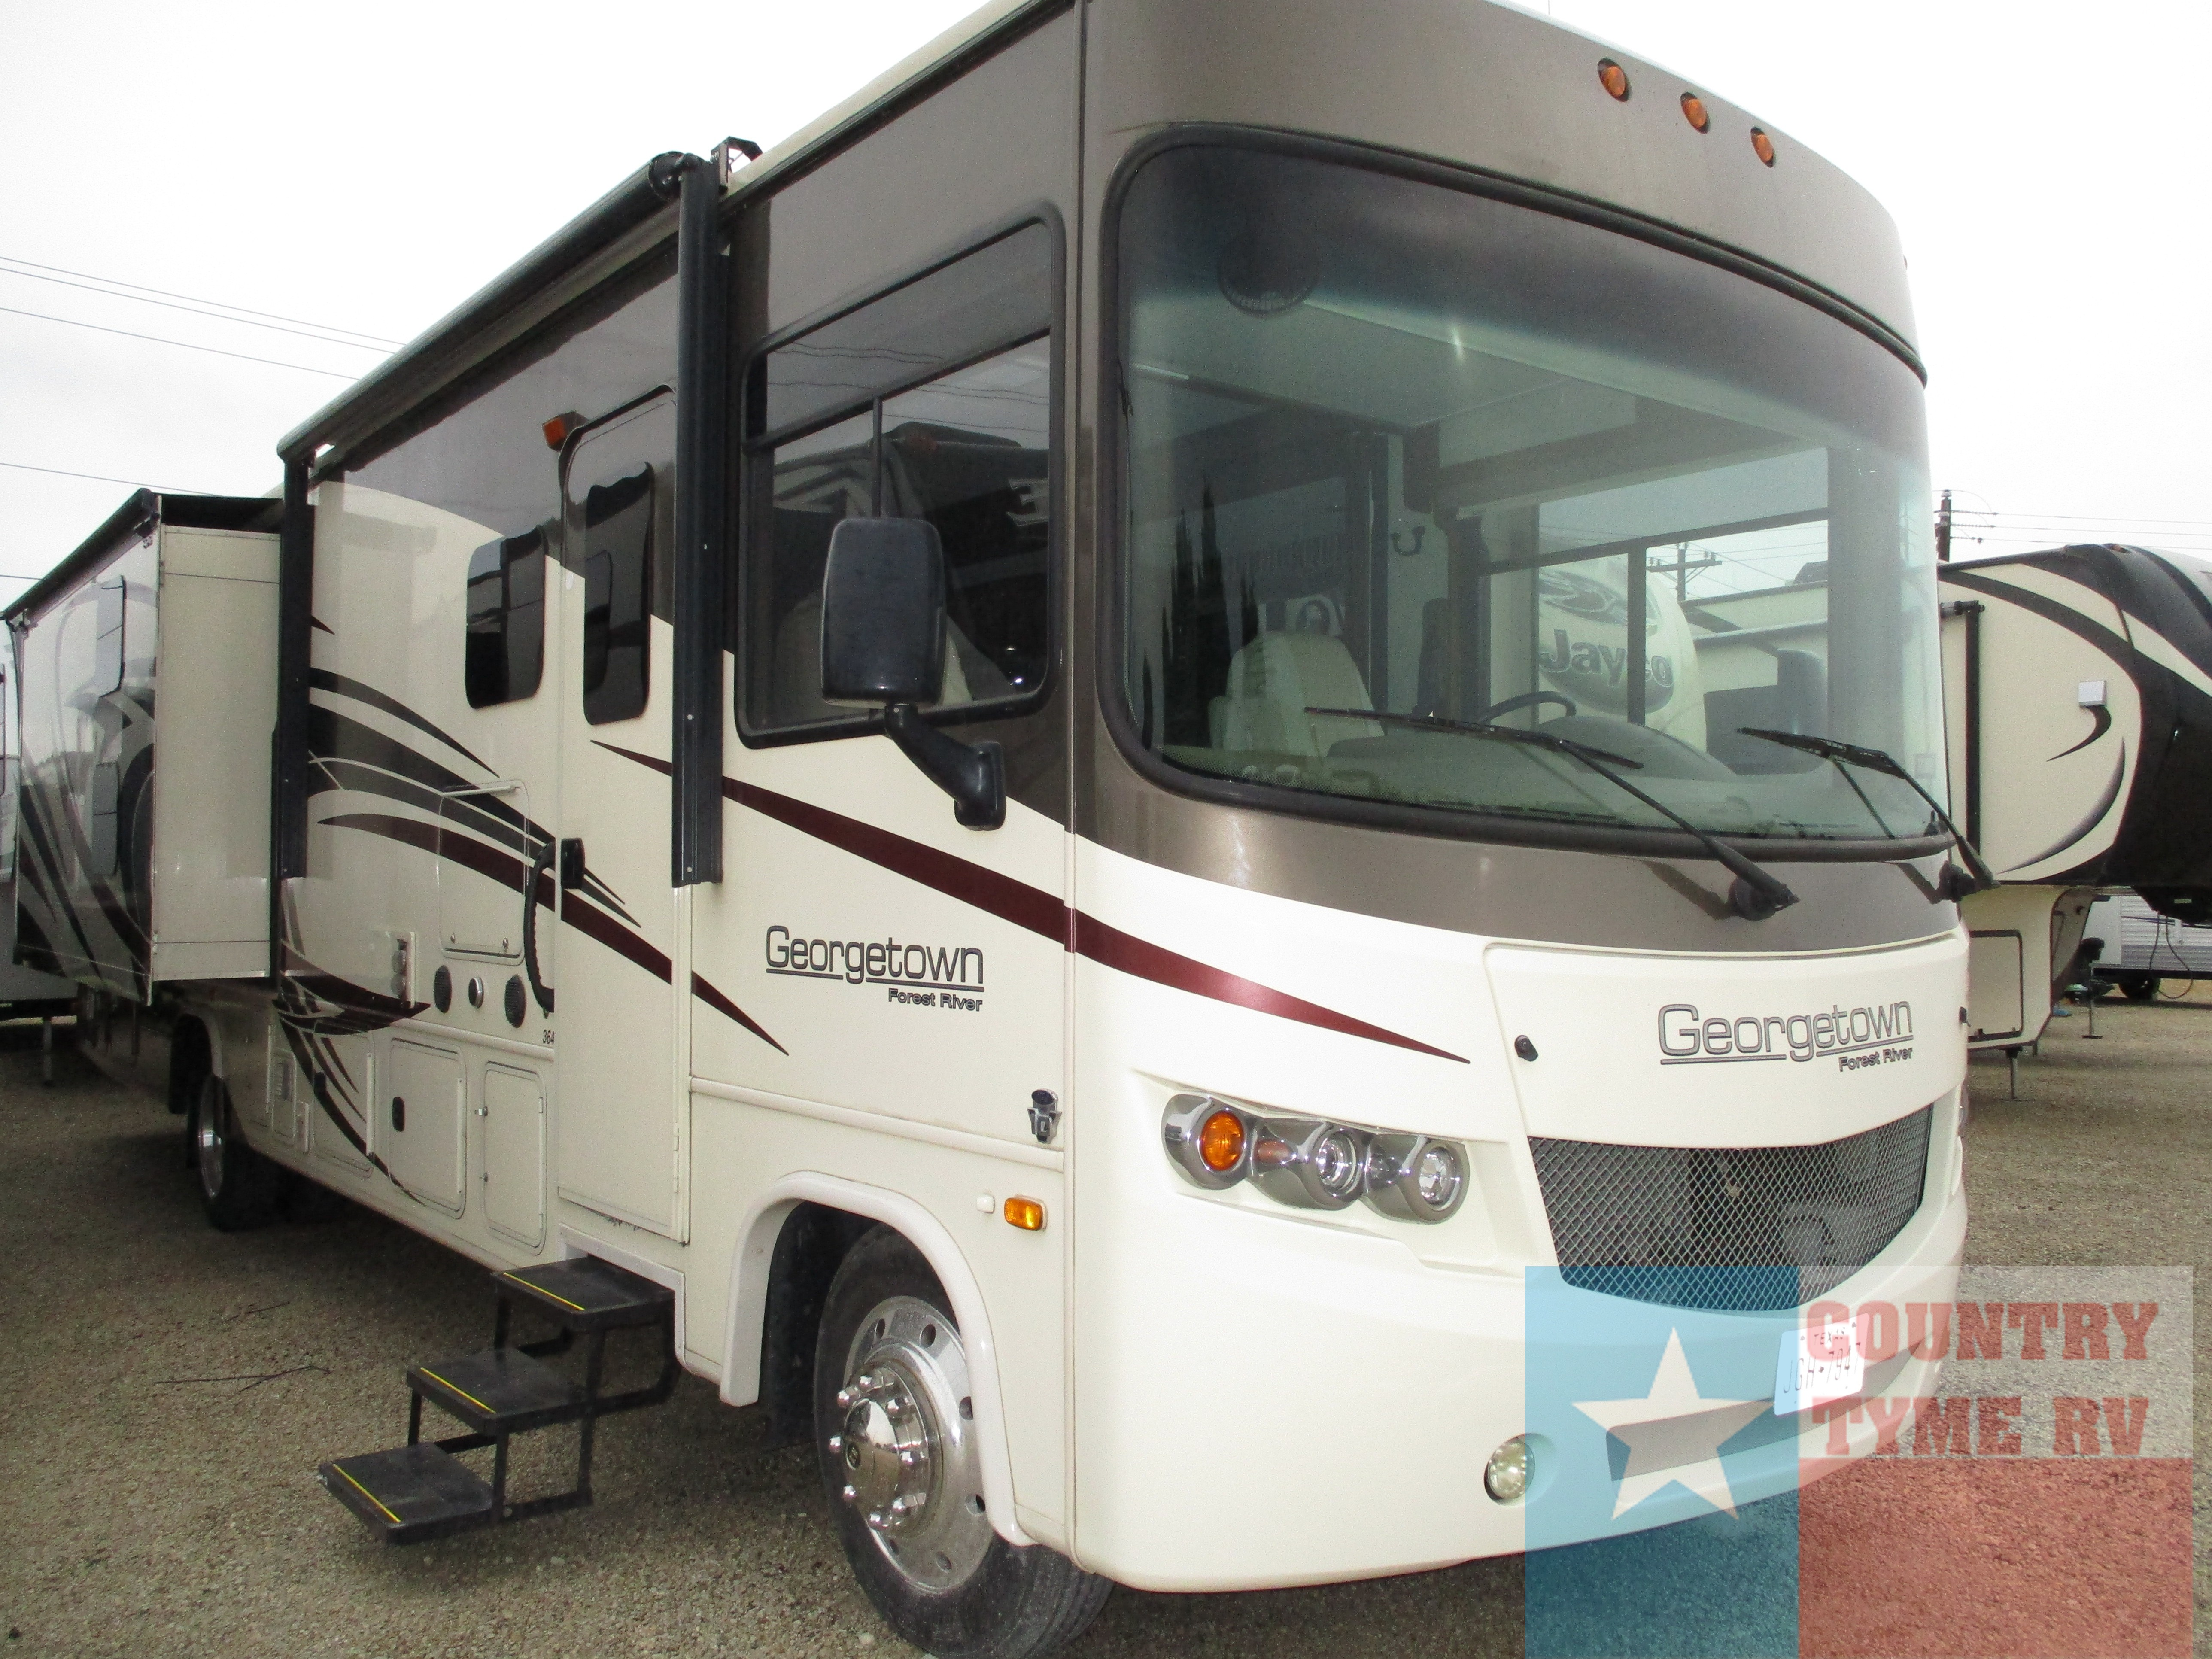 Used, 2016, Forest River, Georgetown 364TS, RV - Class A